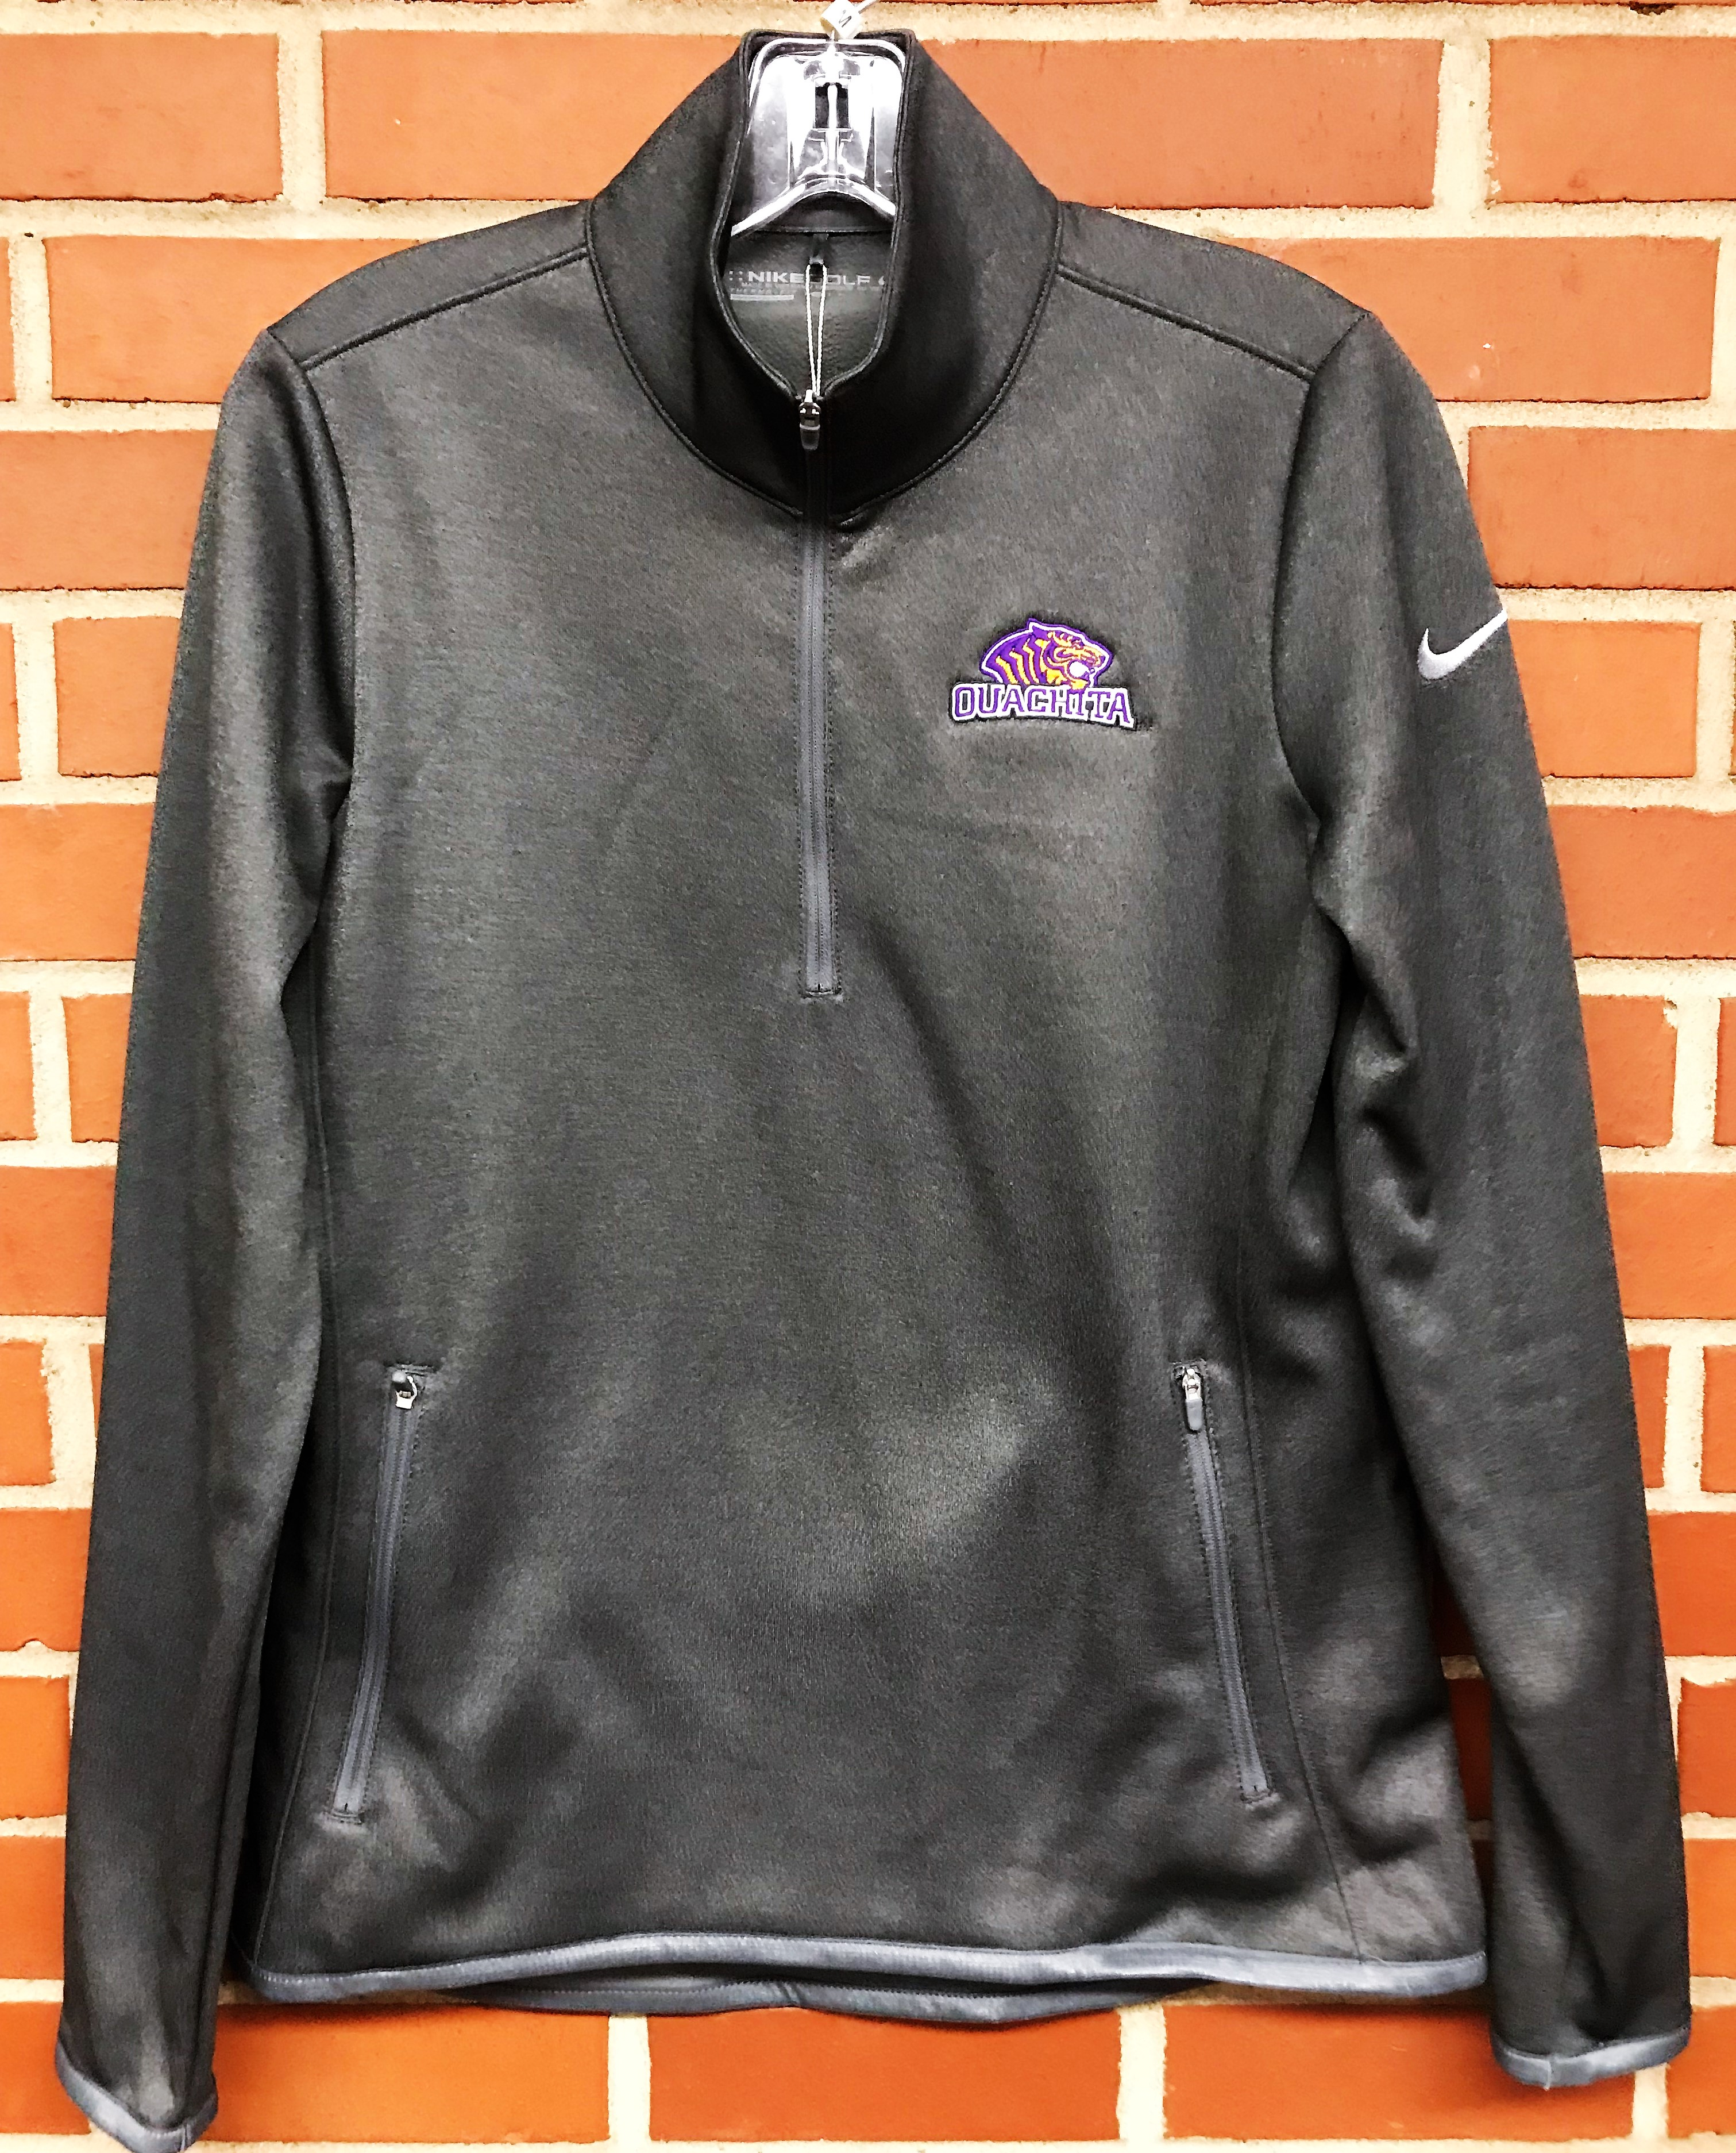 OUACHITA 1/2 ZIP THERMAL PULLOVER